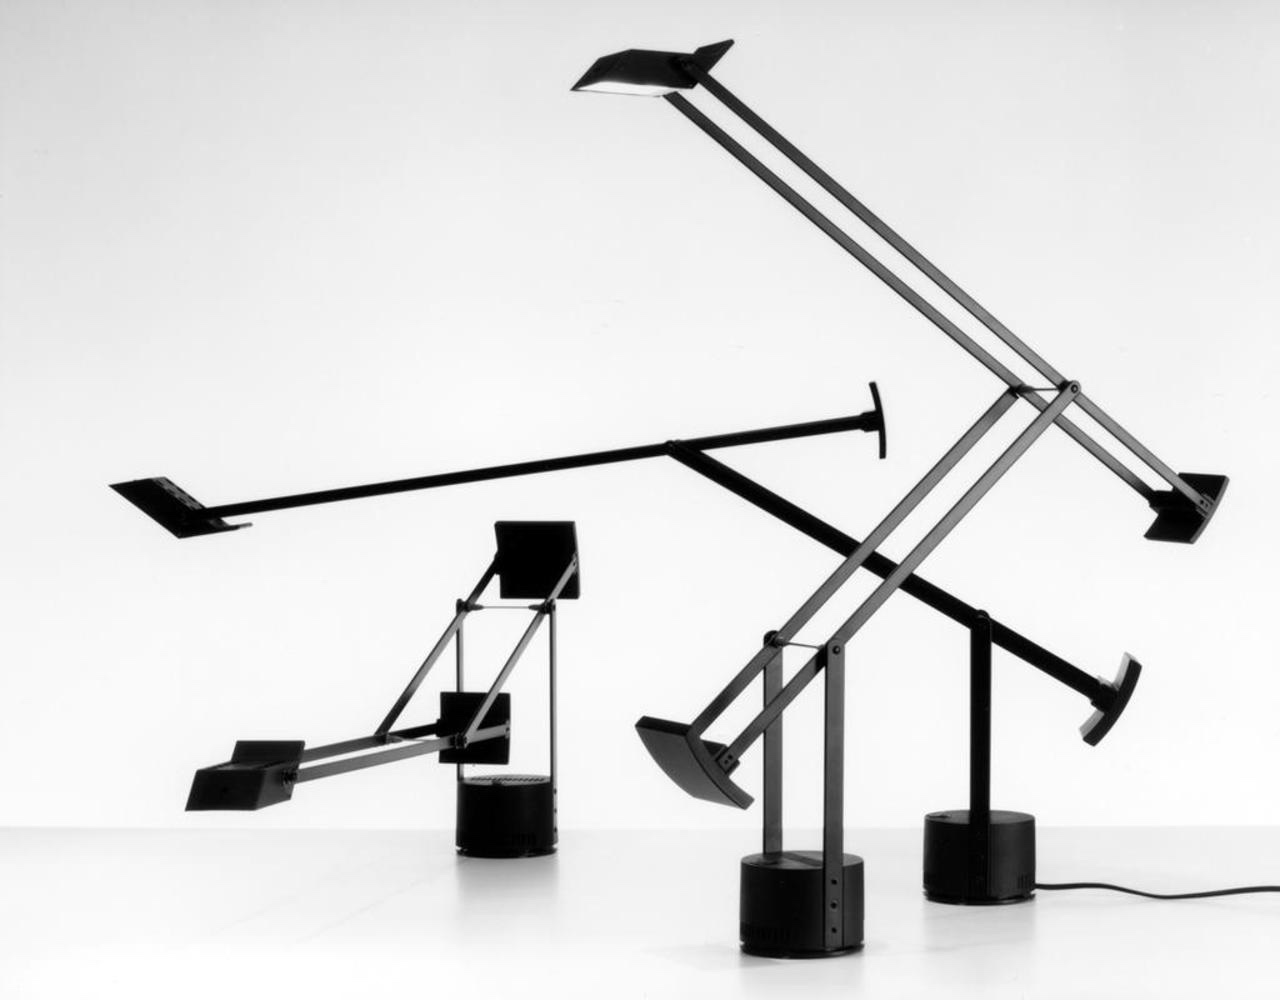 Tizio desk lamp (1972) forArtemide. Winner of thePrize Grand Prix Triennale XV 1974 andincluded in the Permanent Design Collection at MoMA.Image courtesy of Richard Sapper.